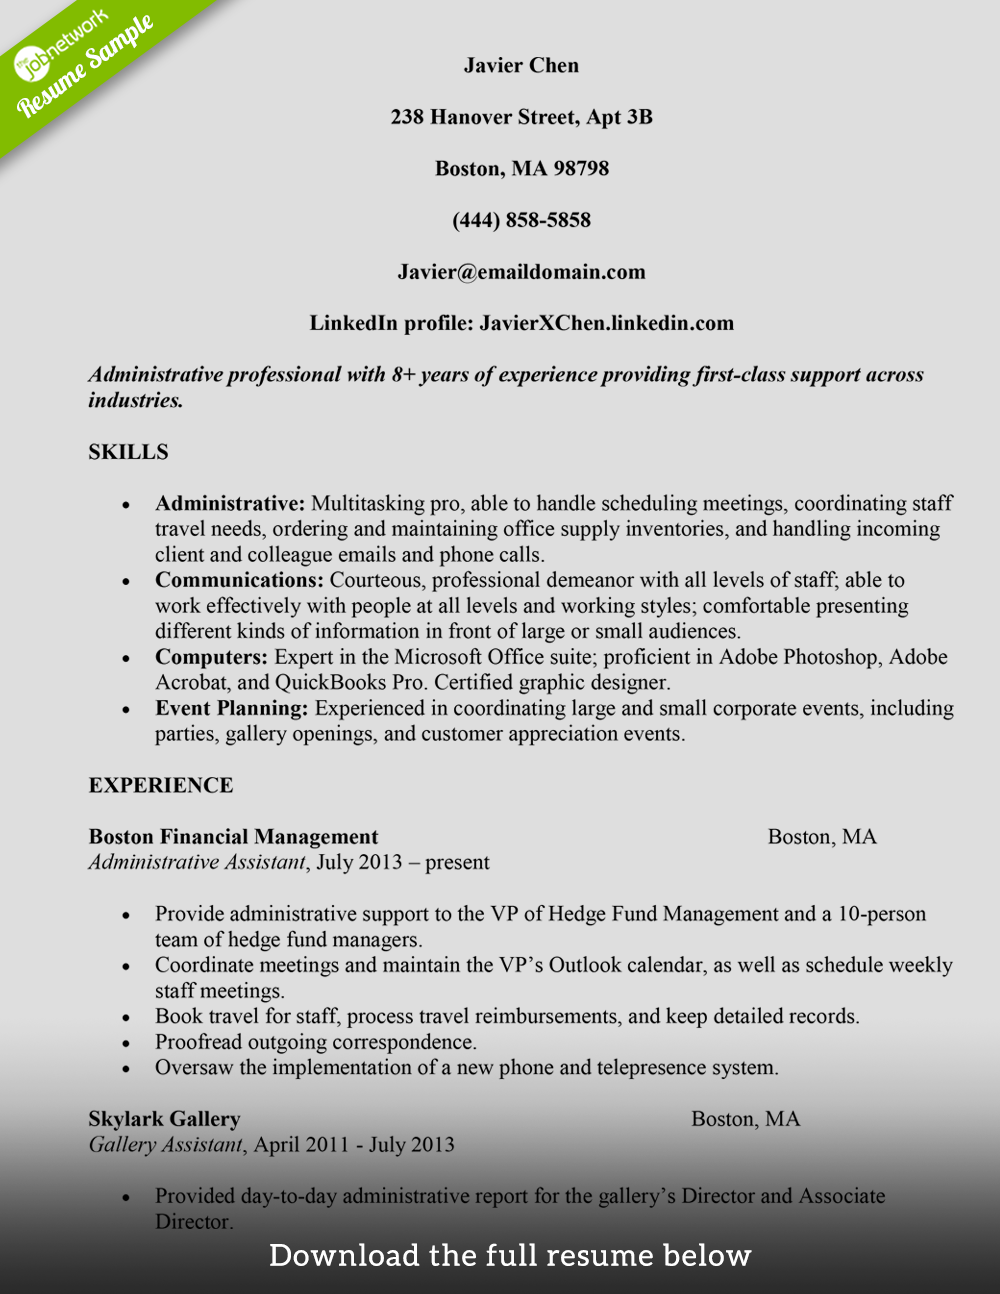 administrative assistant resume javier chen - Administrative Resume Samples